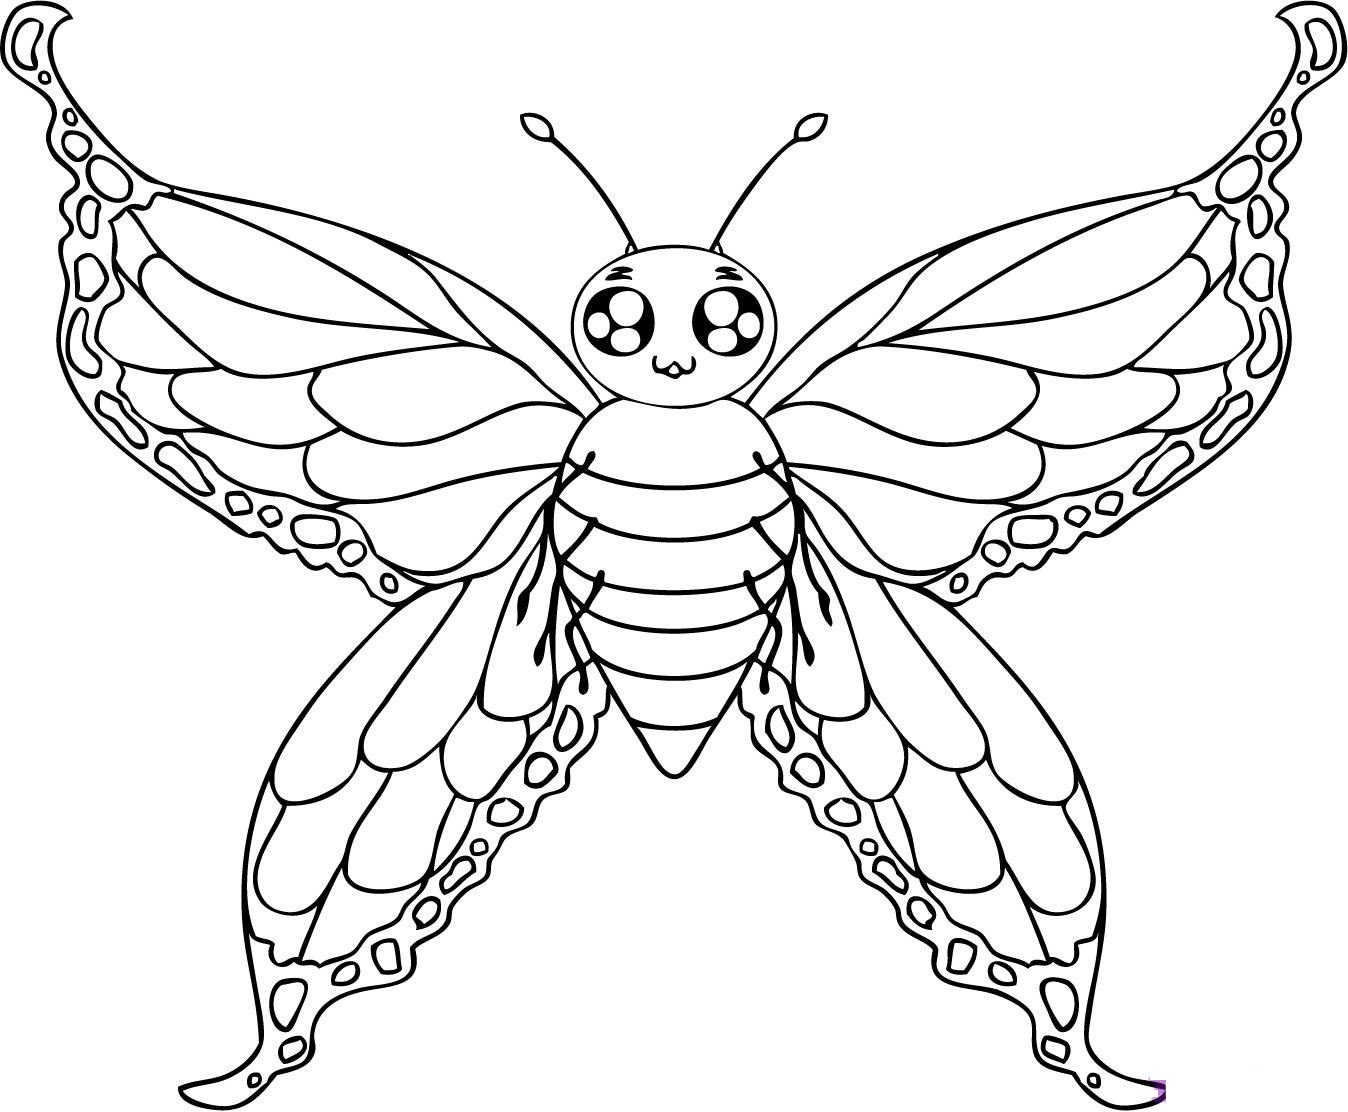 1348x1112 Free Printable Butterfly Coloring Pages For Kids